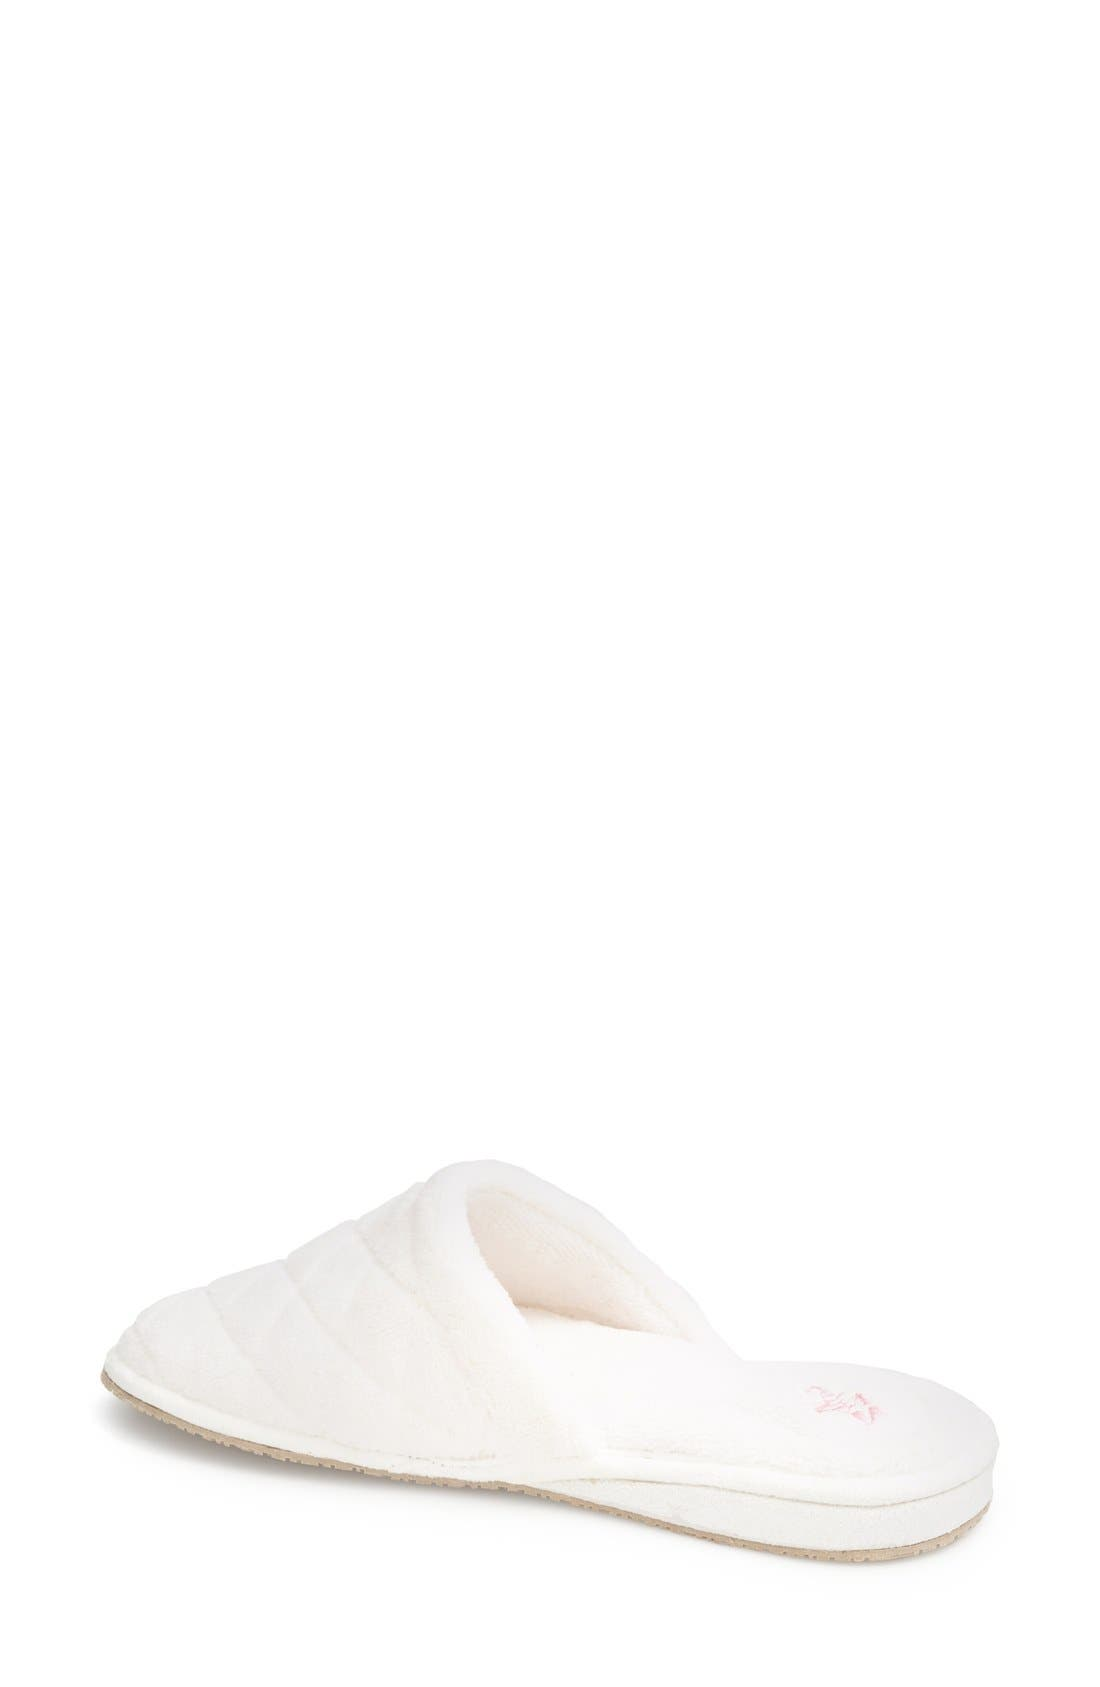 'Aria' Plush Slipper,                             Alternate thumbnail 3, color,                             100